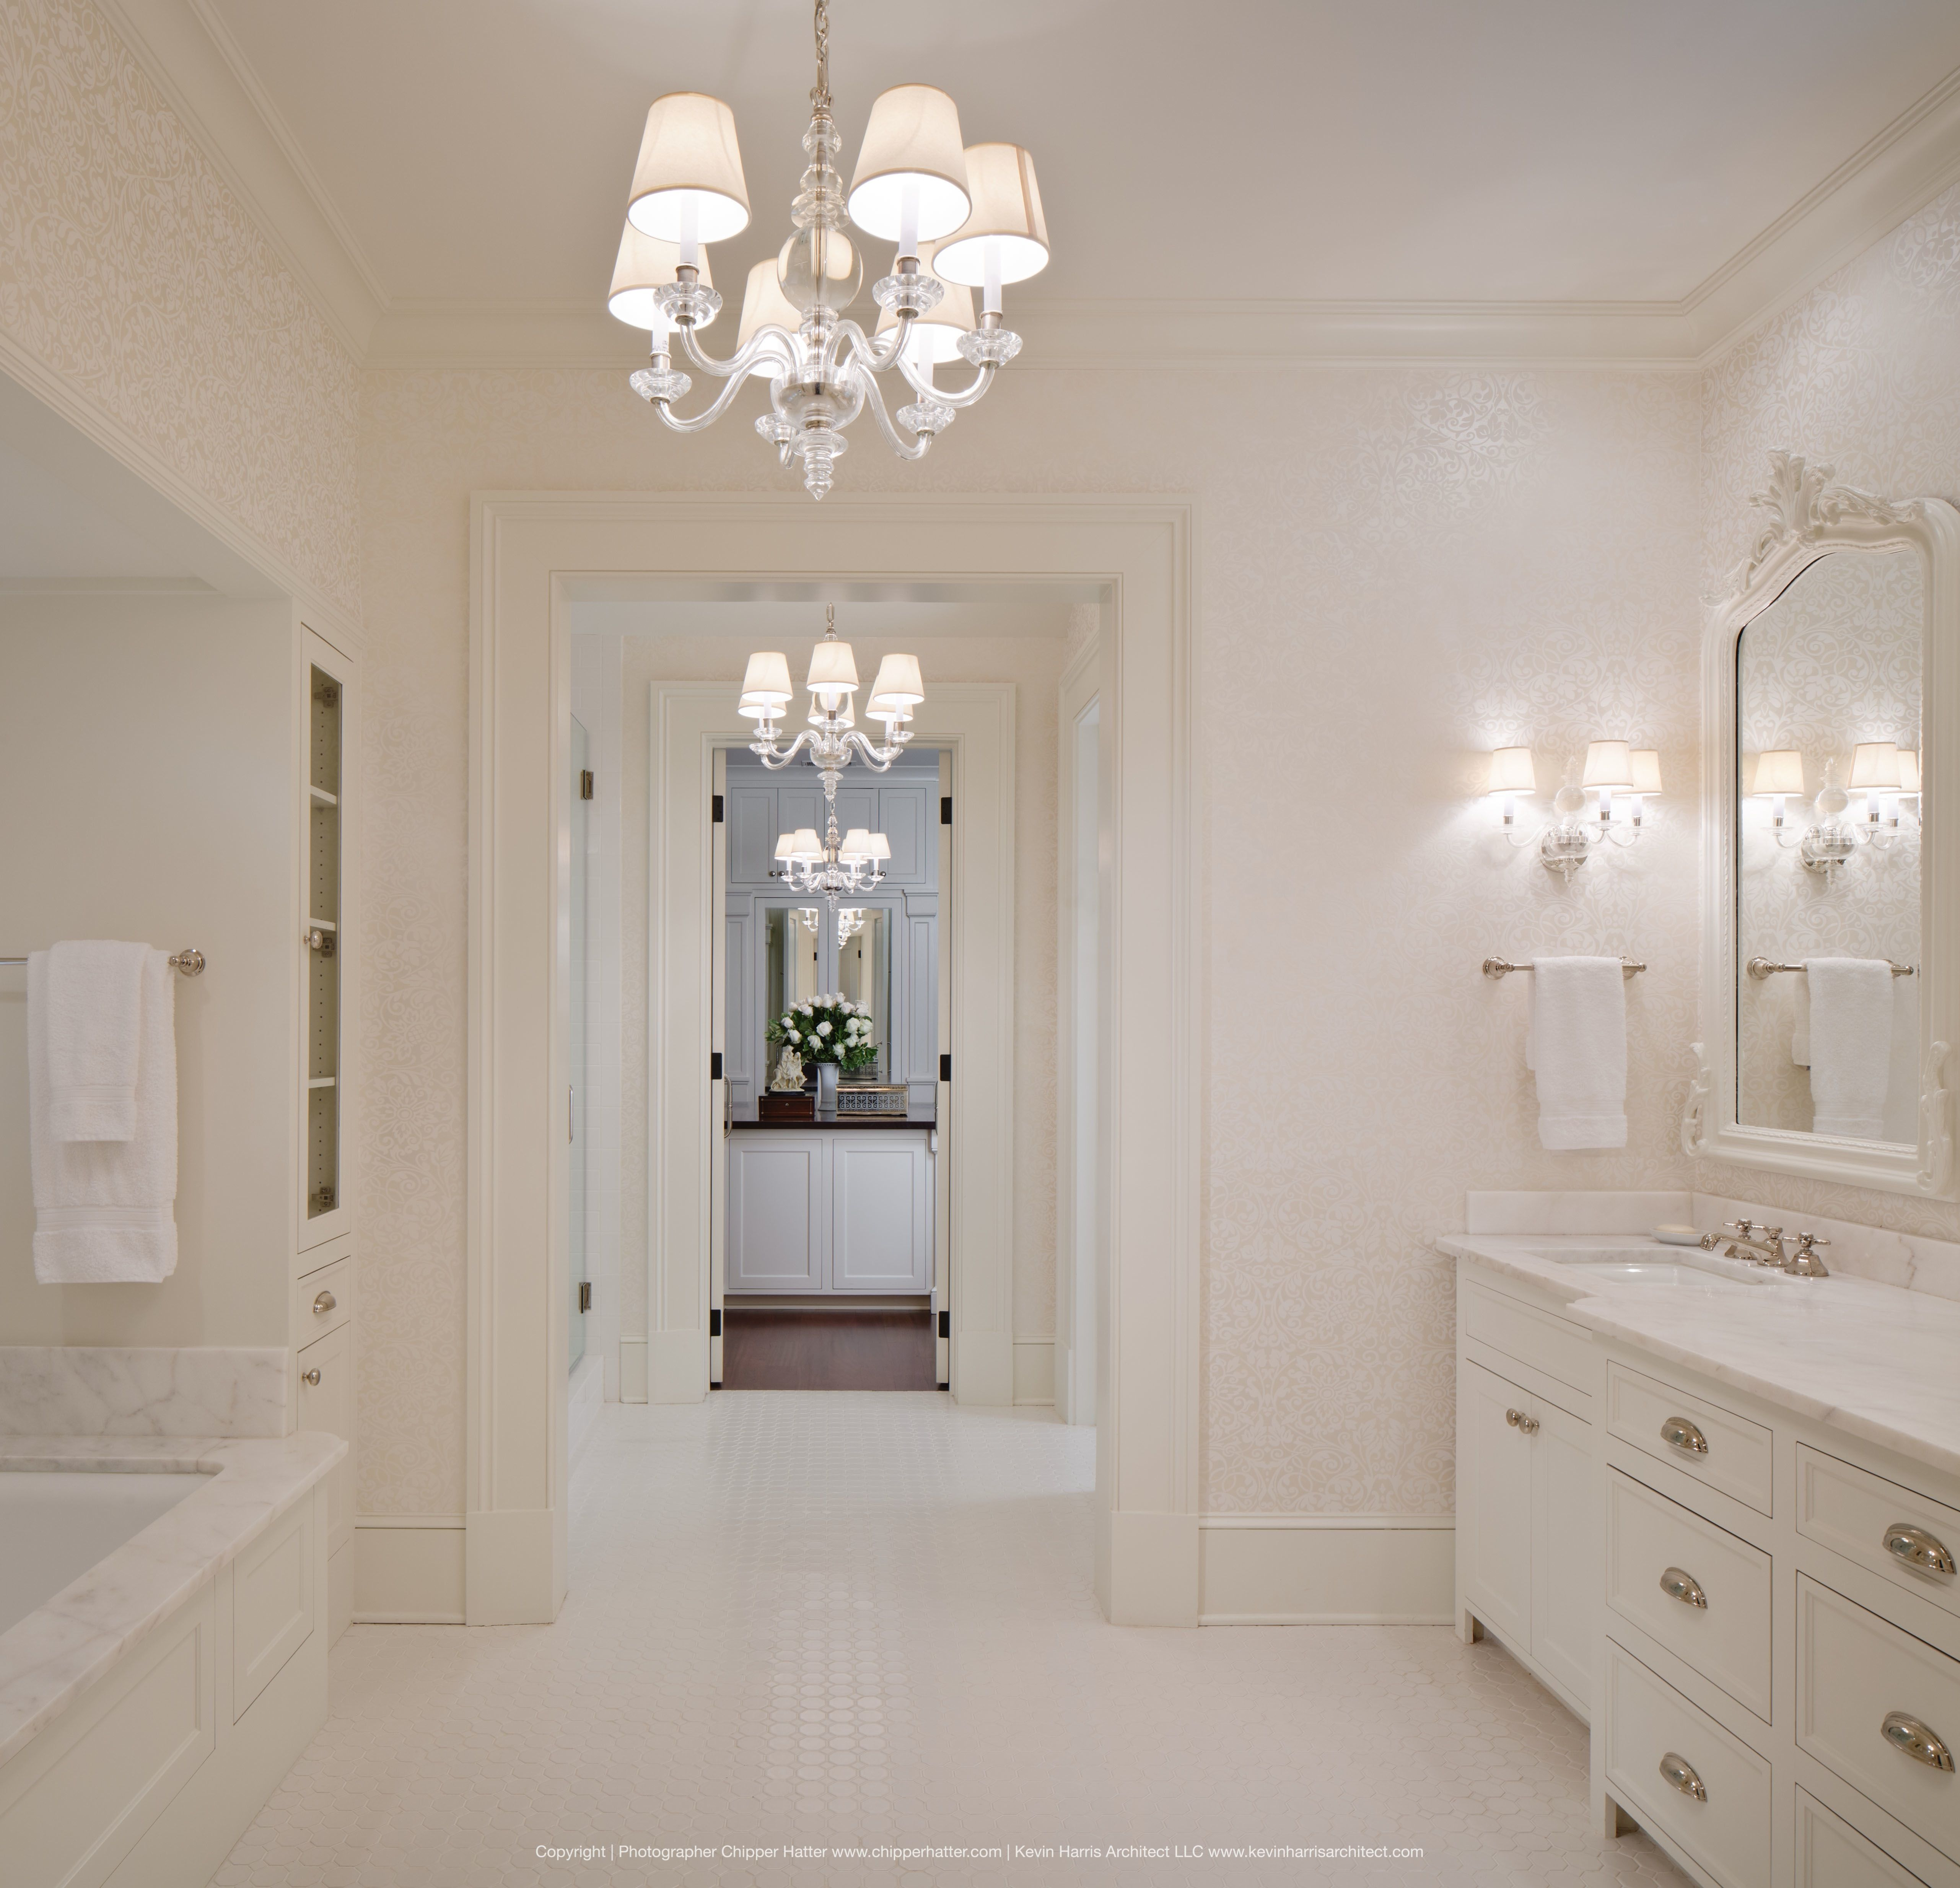 Lots Of Natural Light In Bright White Bathroom With Tile Floors And Clear Acrylic Chandeliers